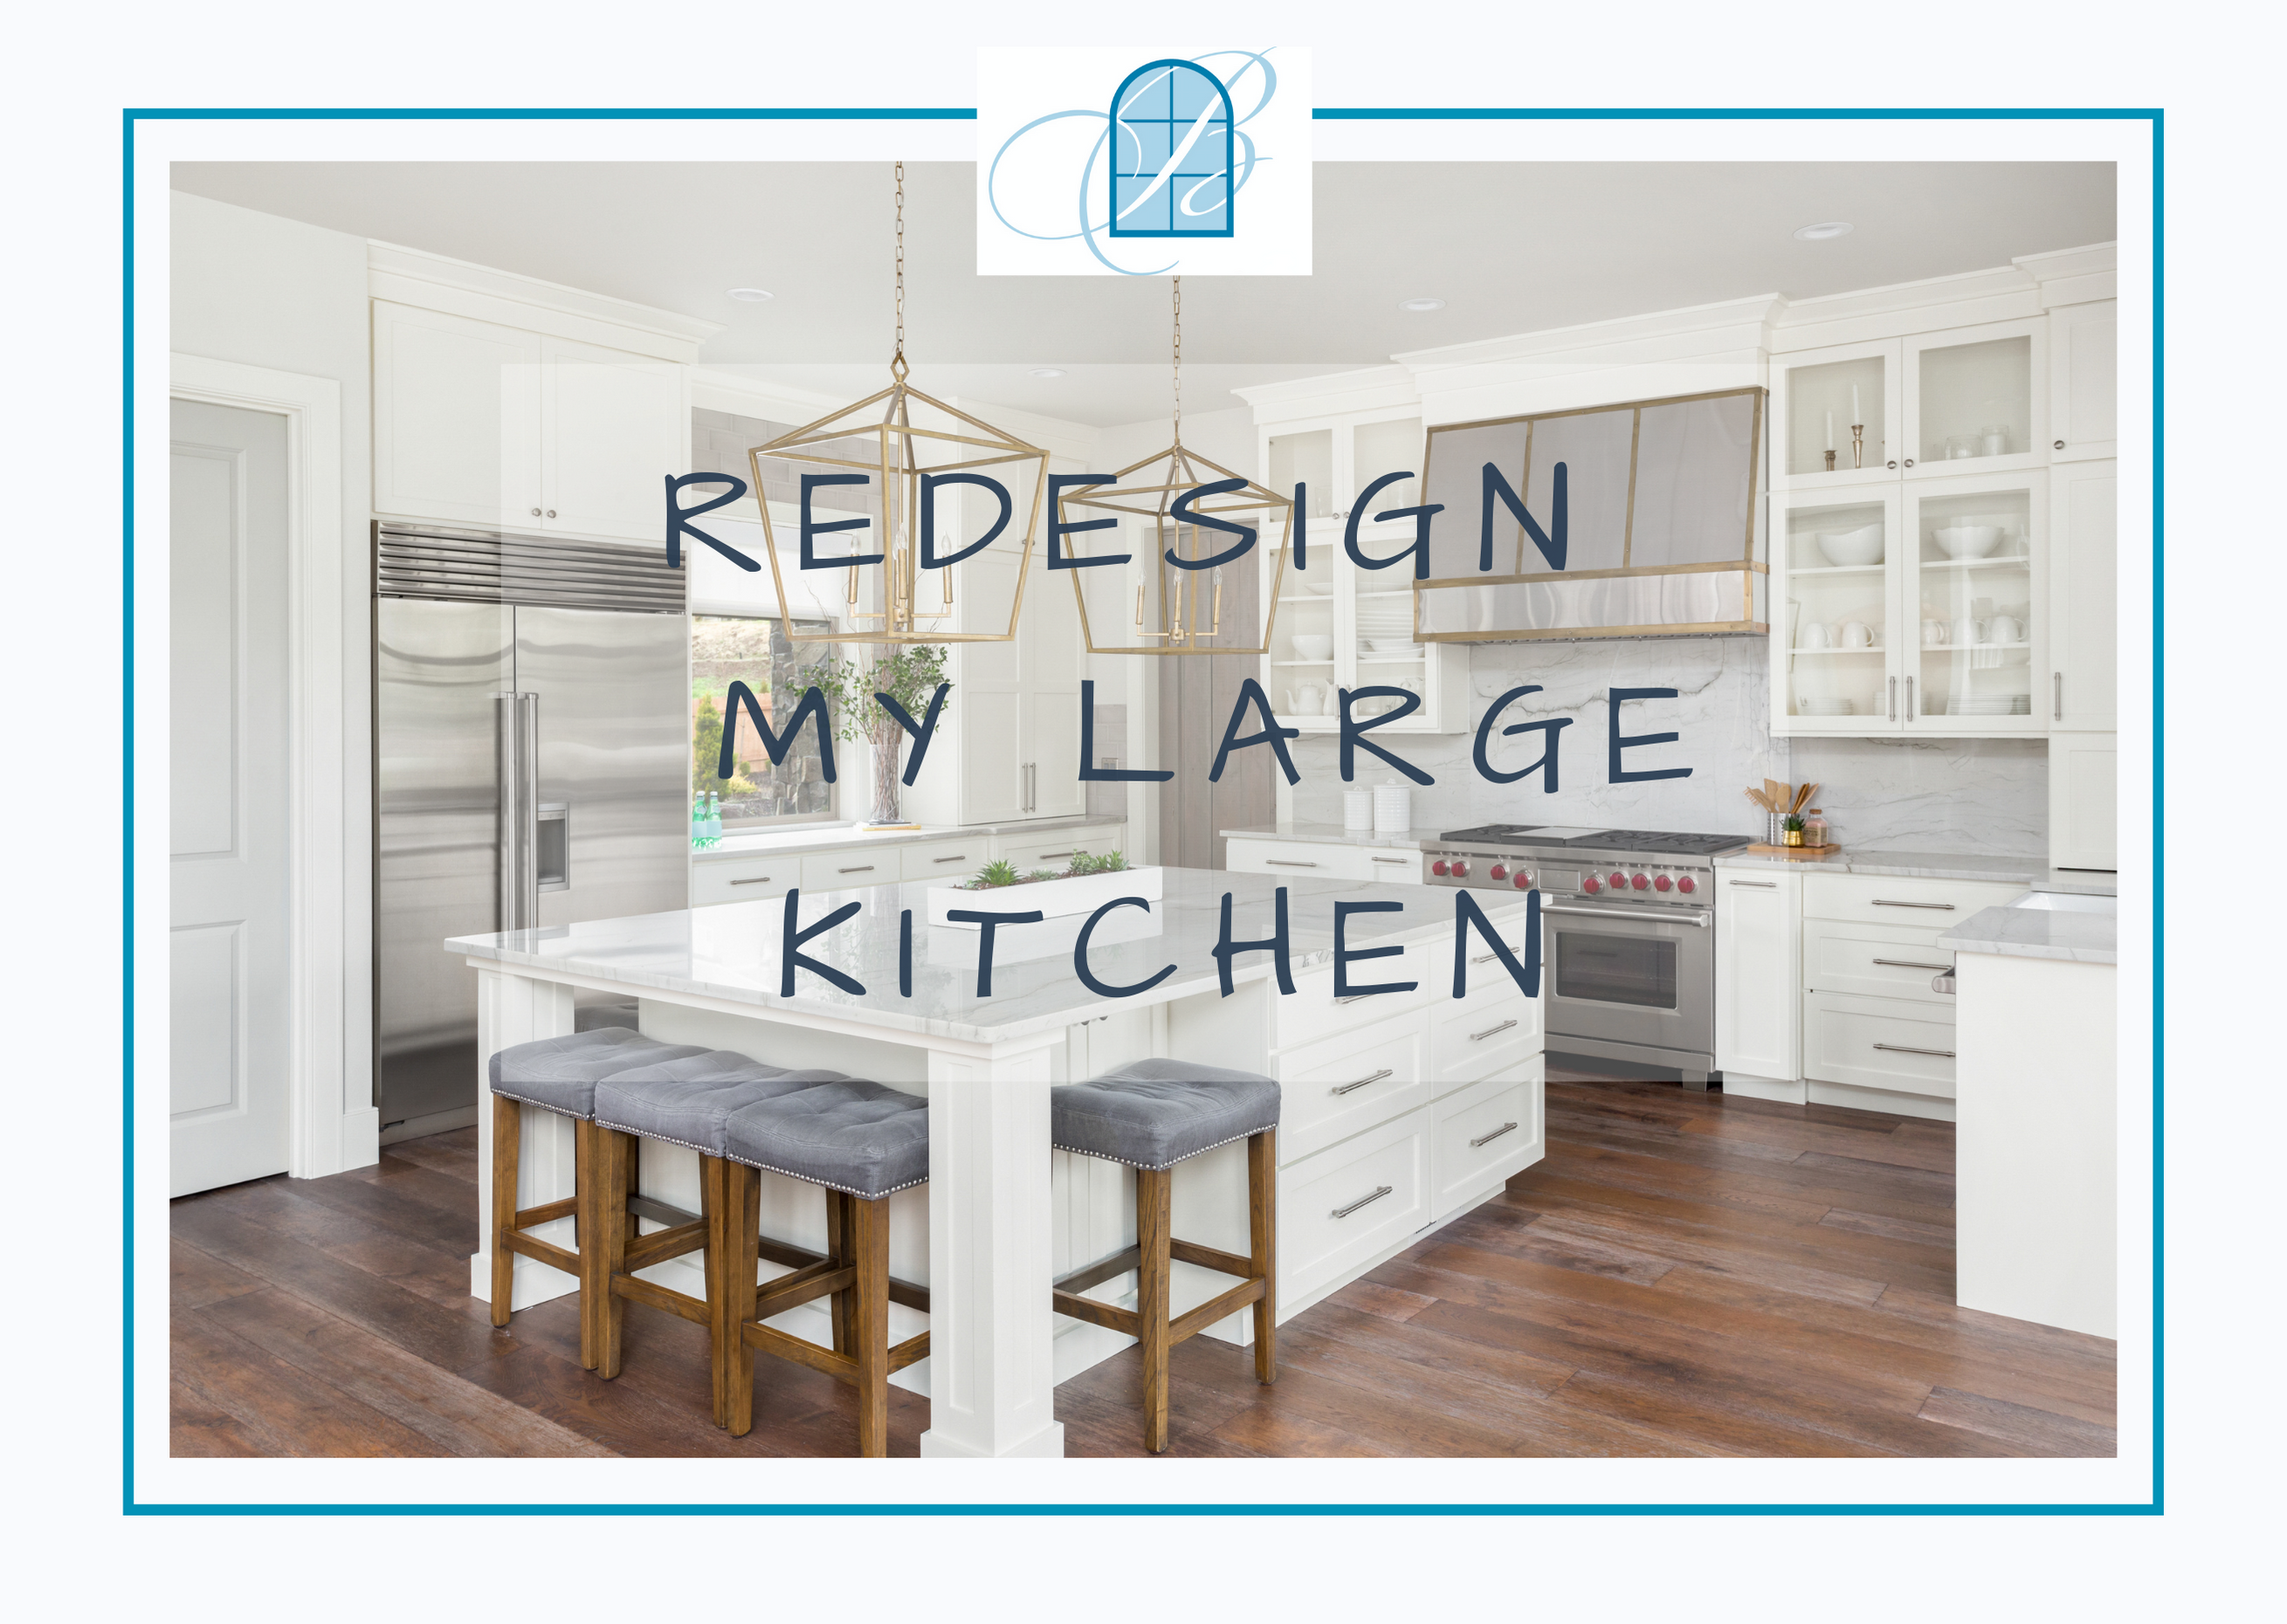 Redesign my large kitchen.png